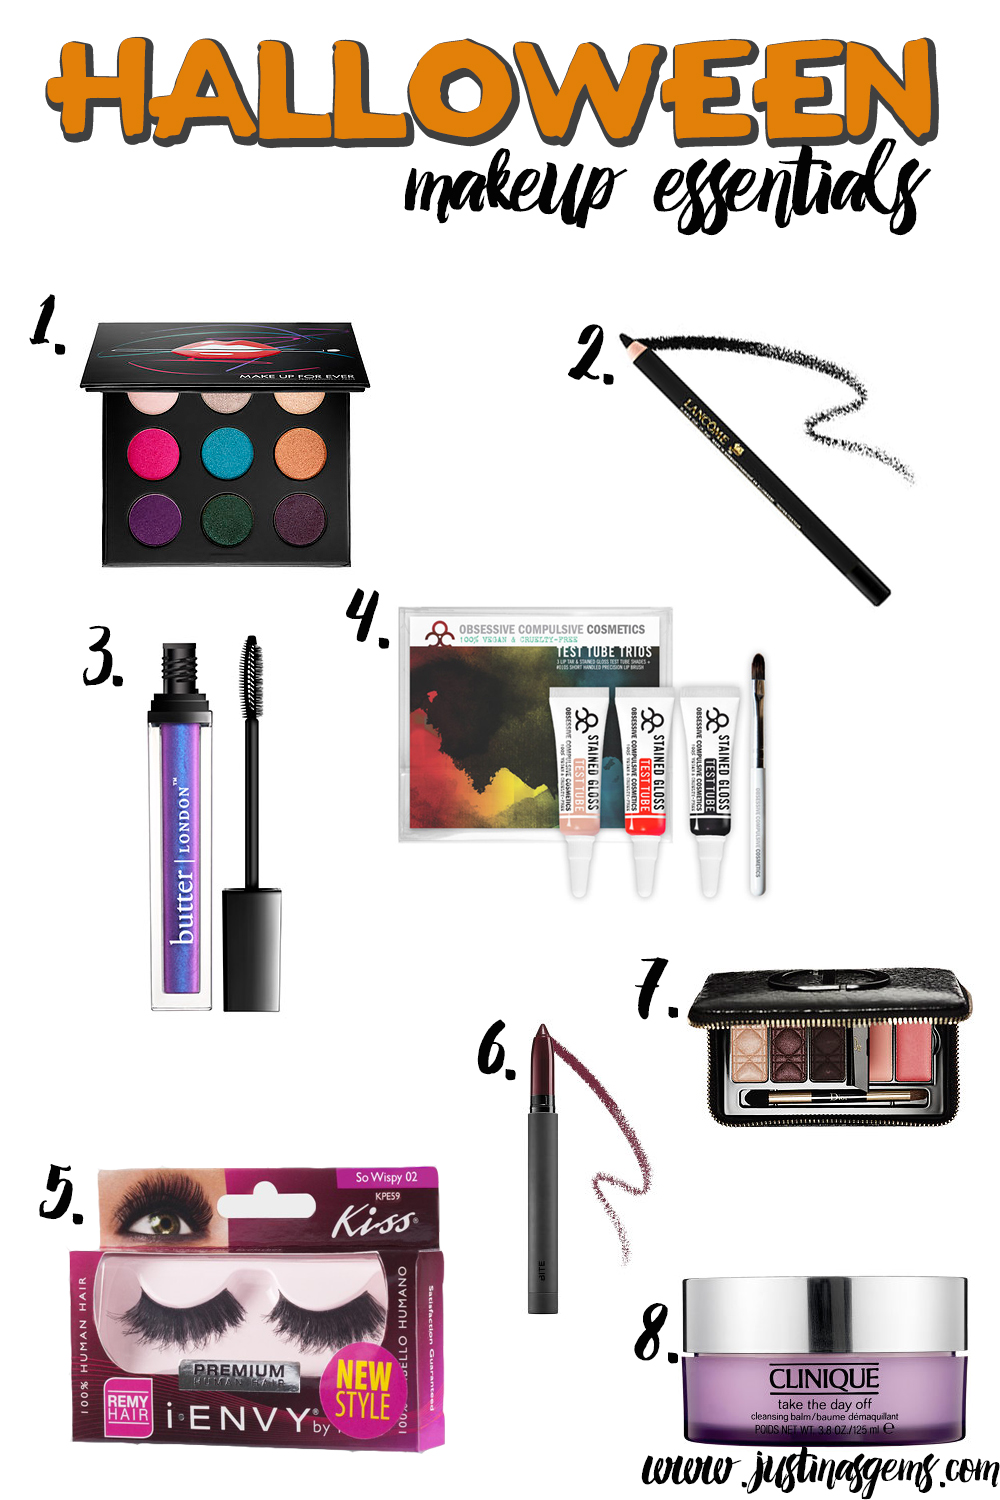 Halloween Makeup Essentials